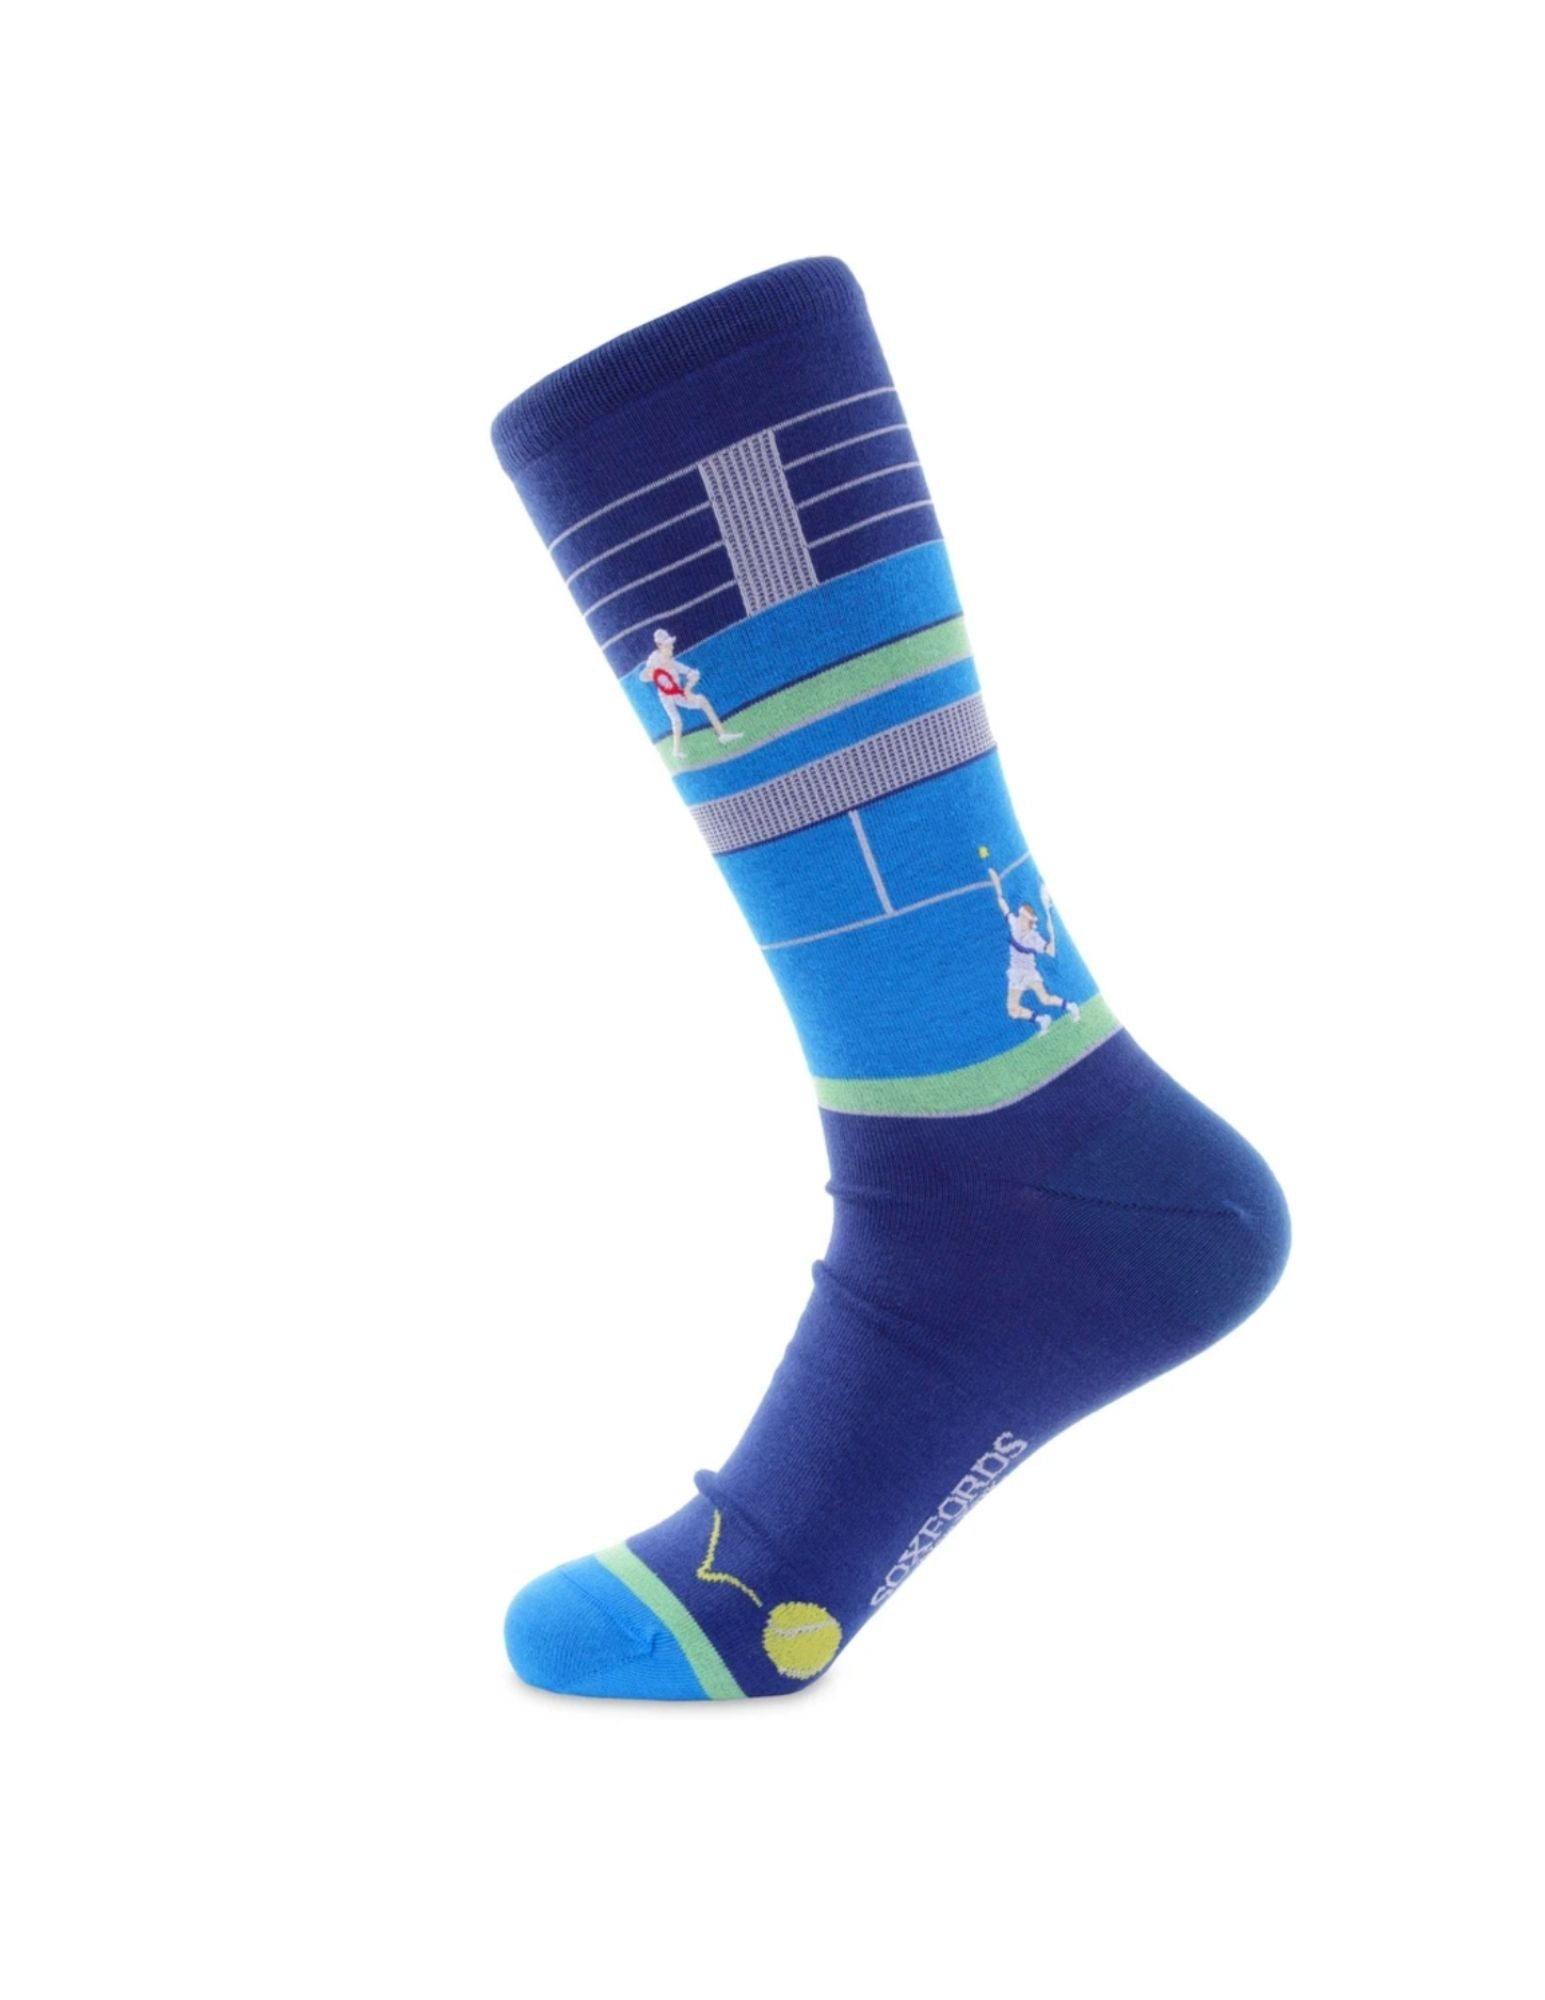 Tennis Break Point Socks